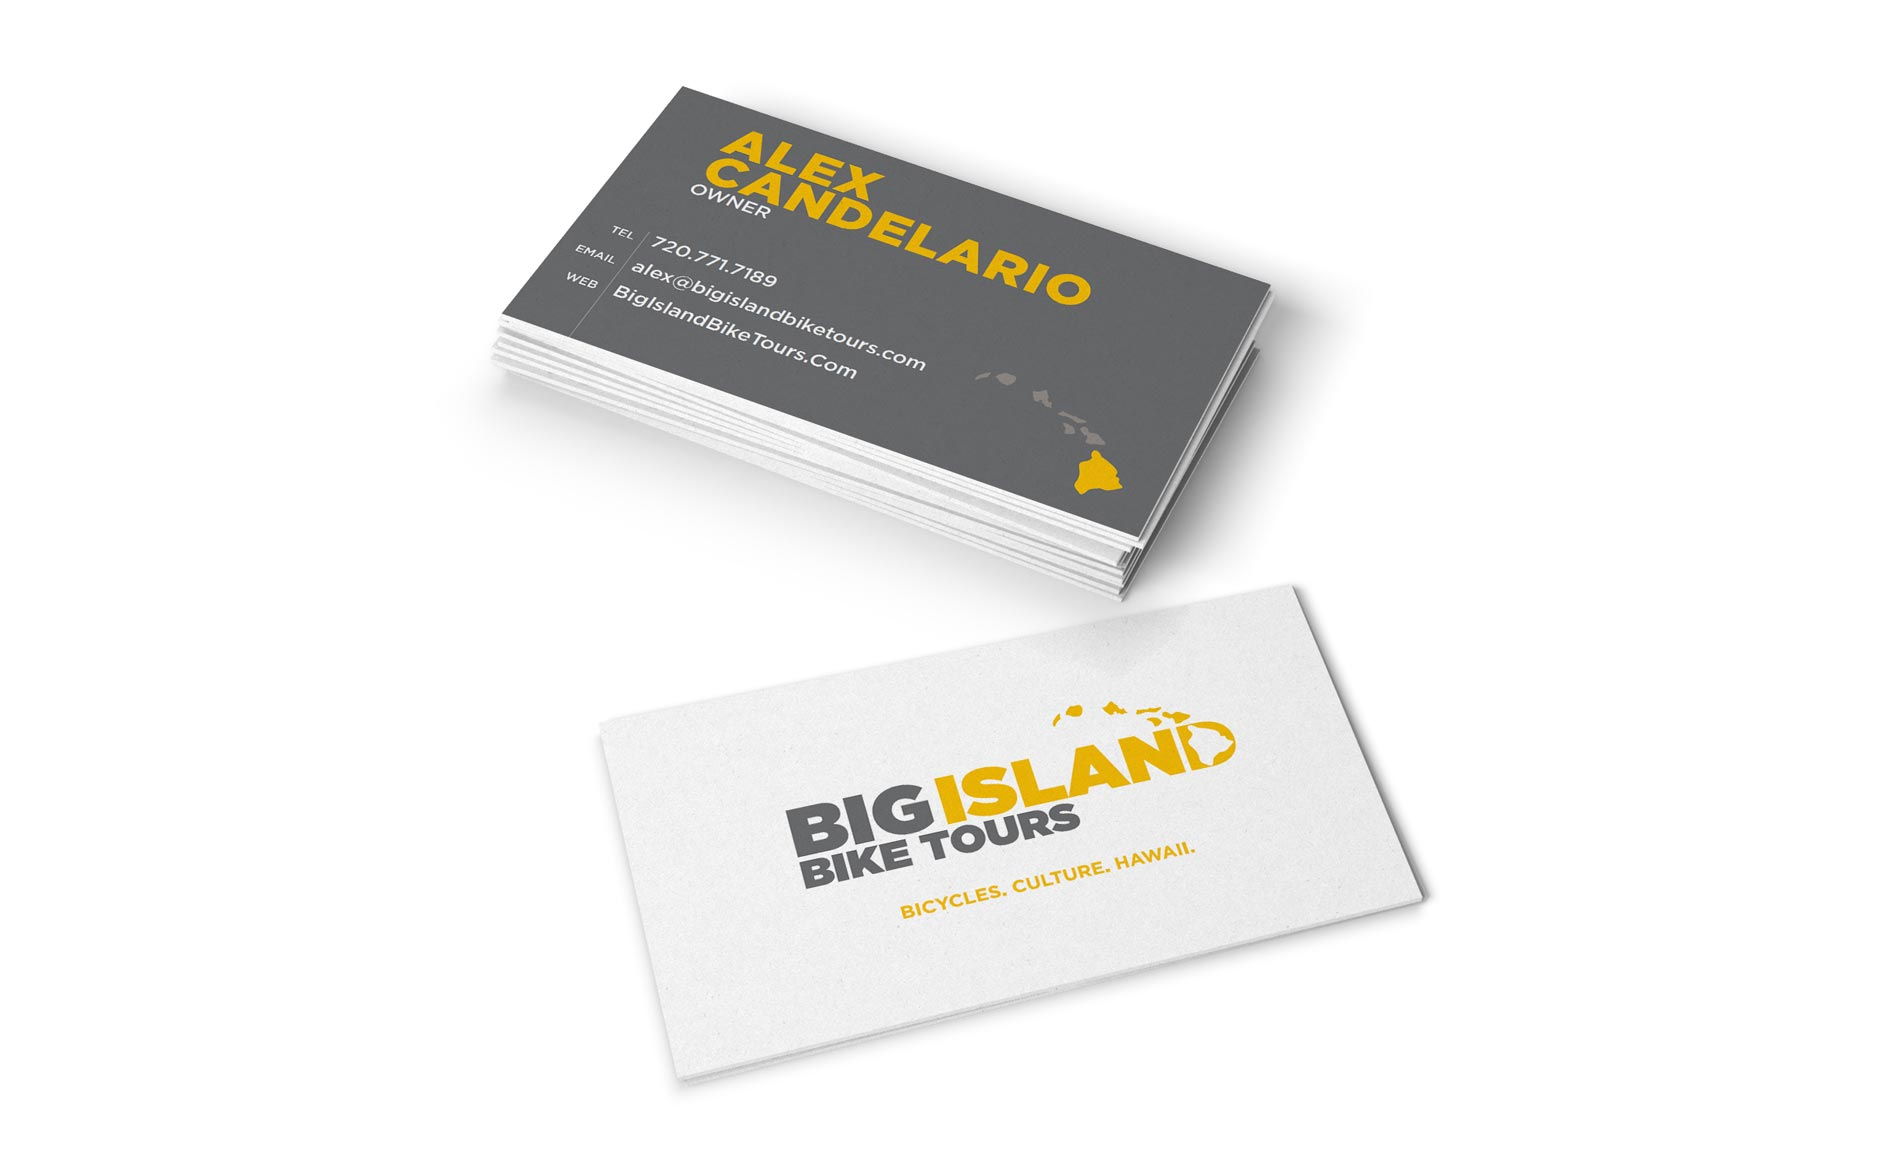 Big Island Bike Tours - Business Card Design